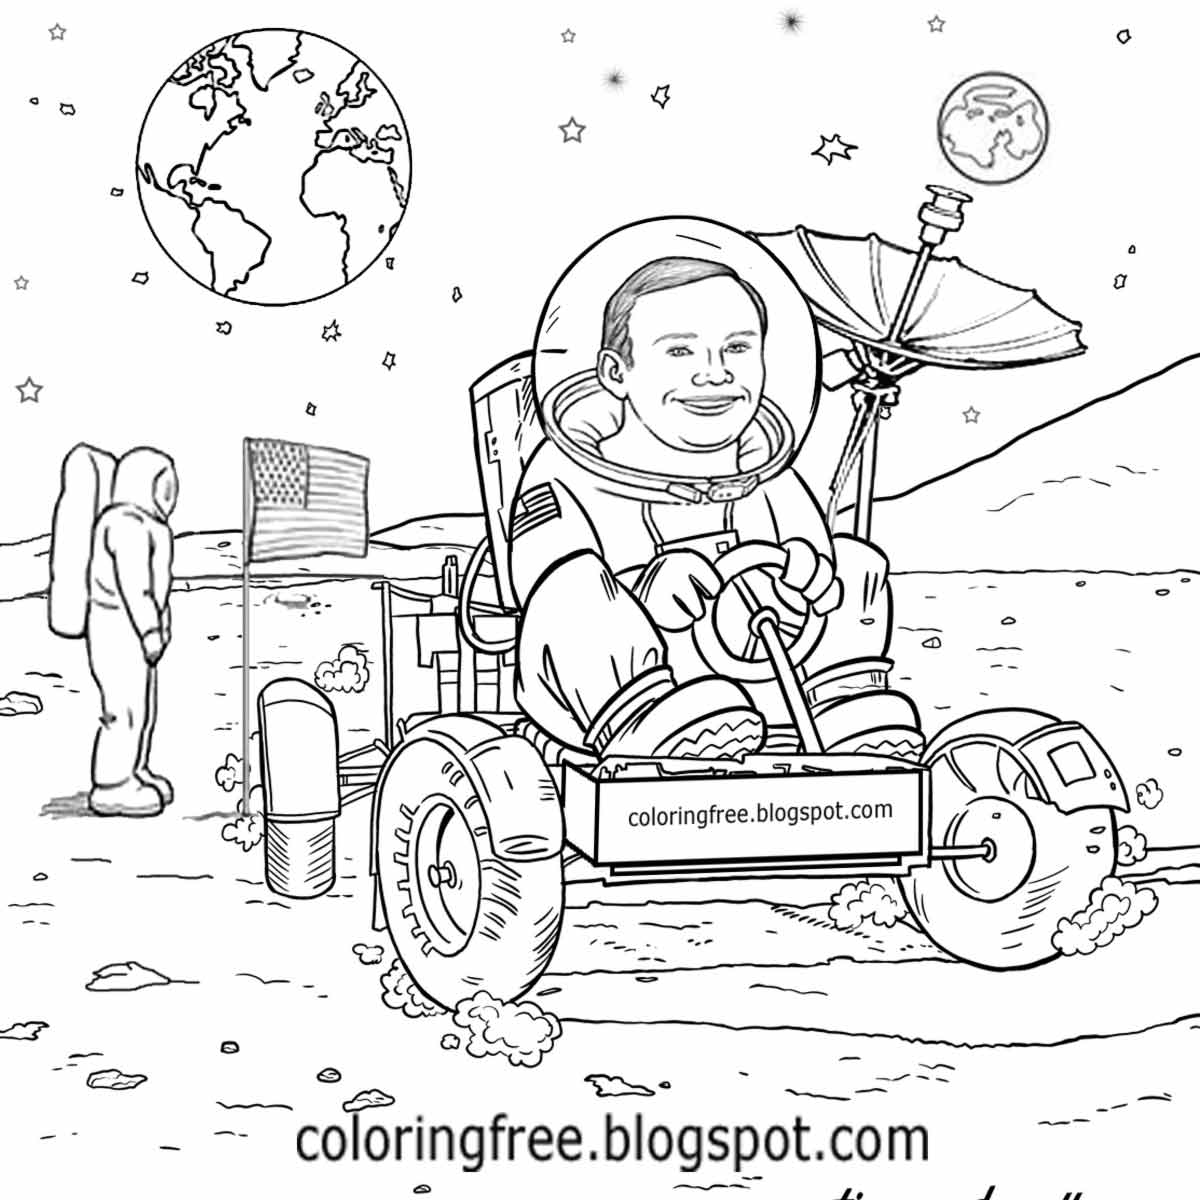 Colouring sheets of the lunar eclipse - New Space Exploration Usa Astronaut Lunar Buggy Rover Super Moon Car Coloring Book Pictures For Kids